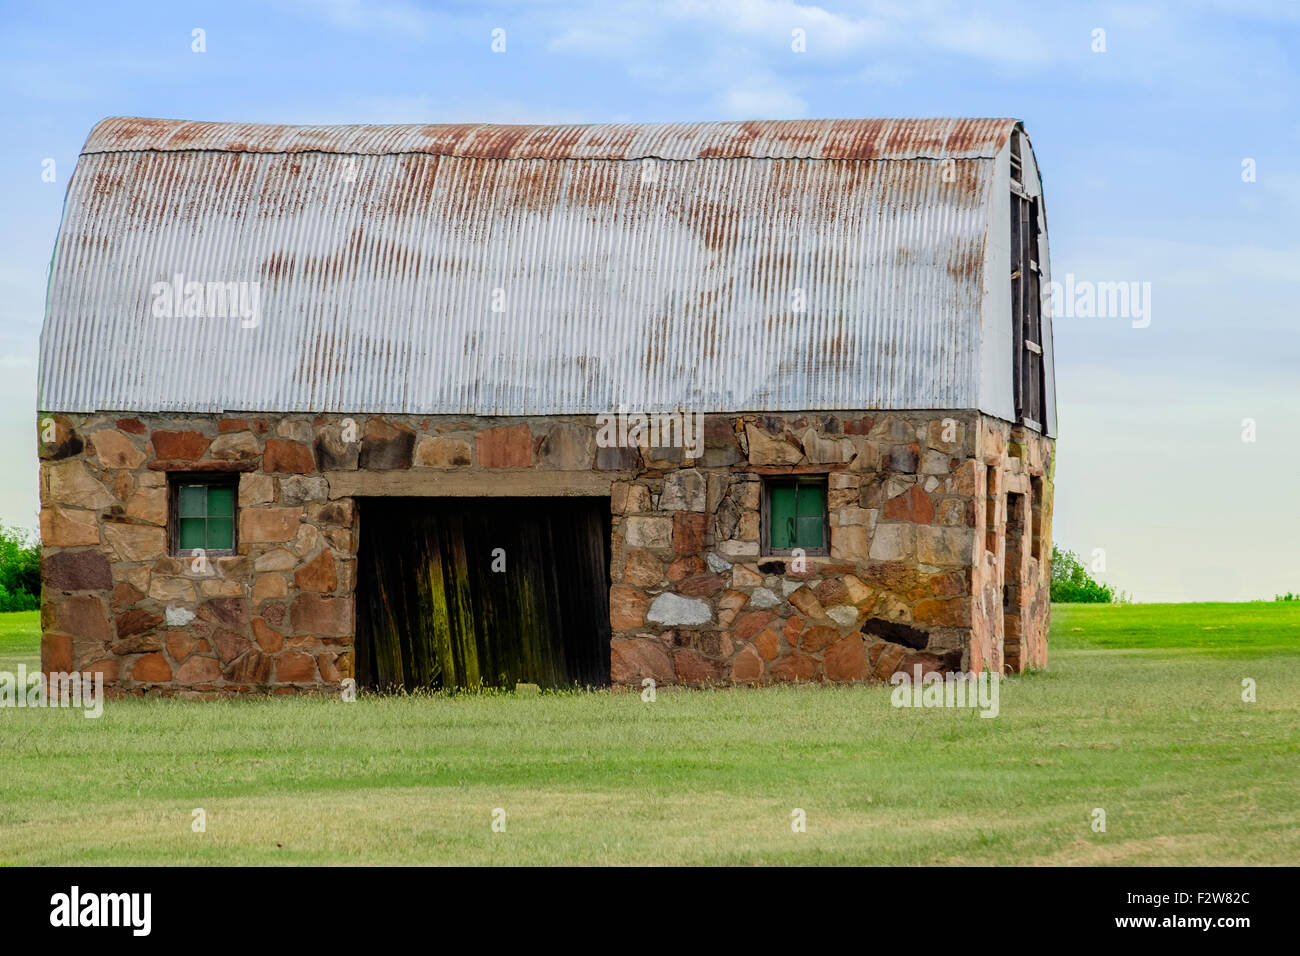 An Old Rustic Stone Barn With A Rusty Tin Roof In The Oklahoma, USA  Countryside.